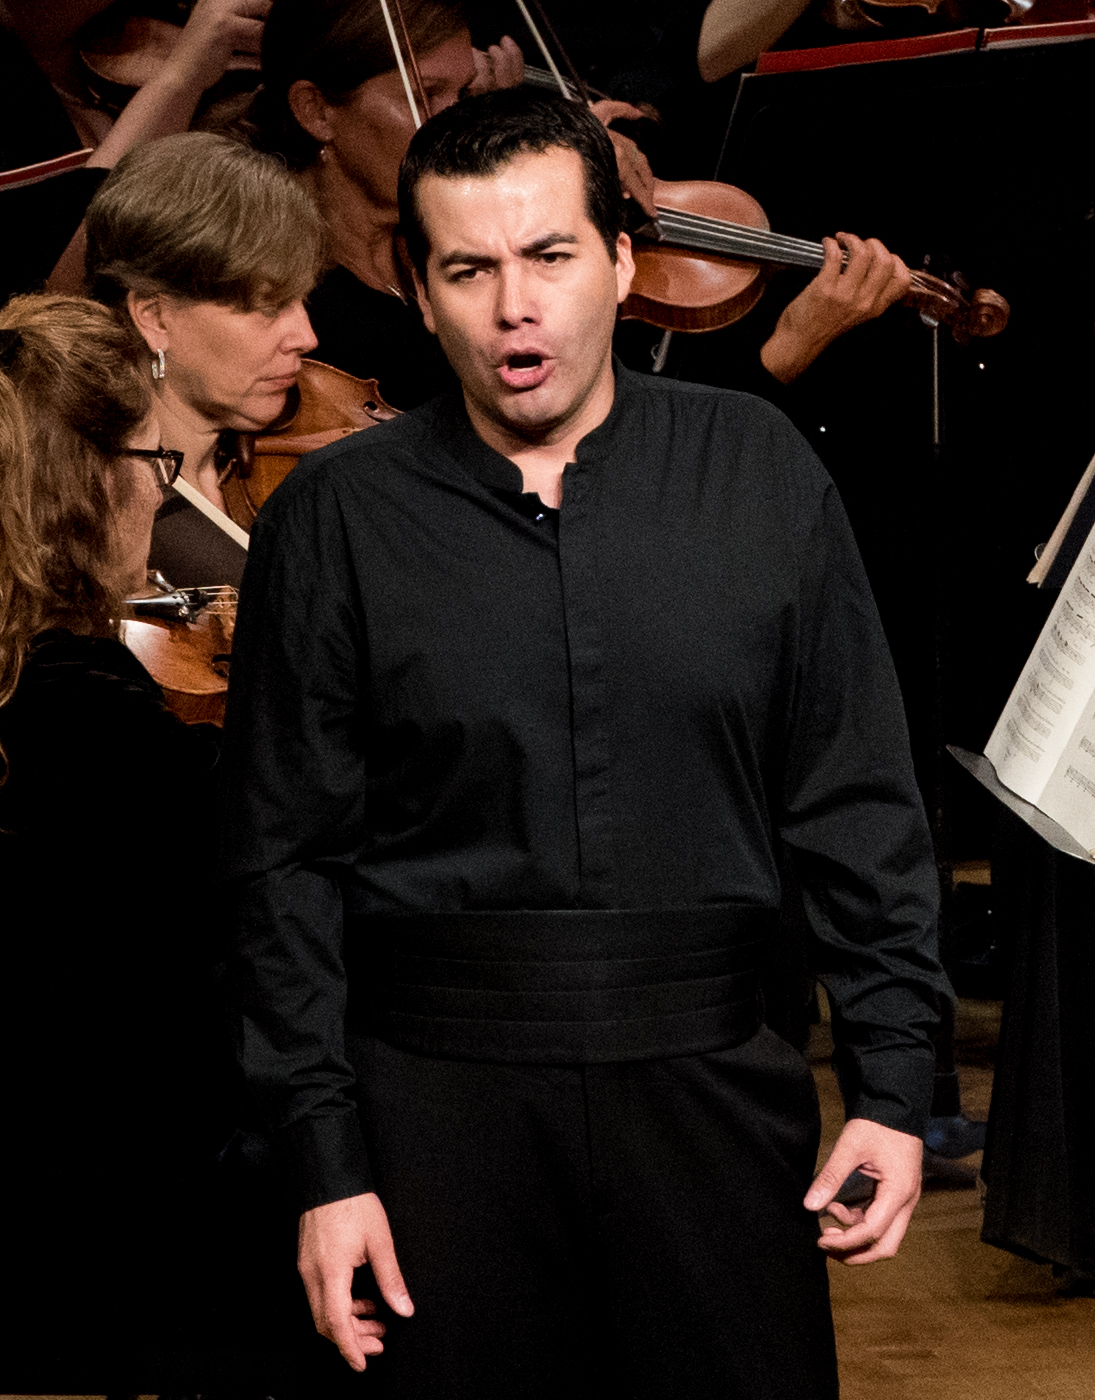 IN REVIEW: Baritone JAVIER ARREY singing Riccardo's 'Ah, per sempre io ti perdei' from Vincenzo Bellini's I PURITANI in Washington Concert Opera's 30th Anniversary Concert [Photo by Don Lassell, © by Washington Concert Opera]